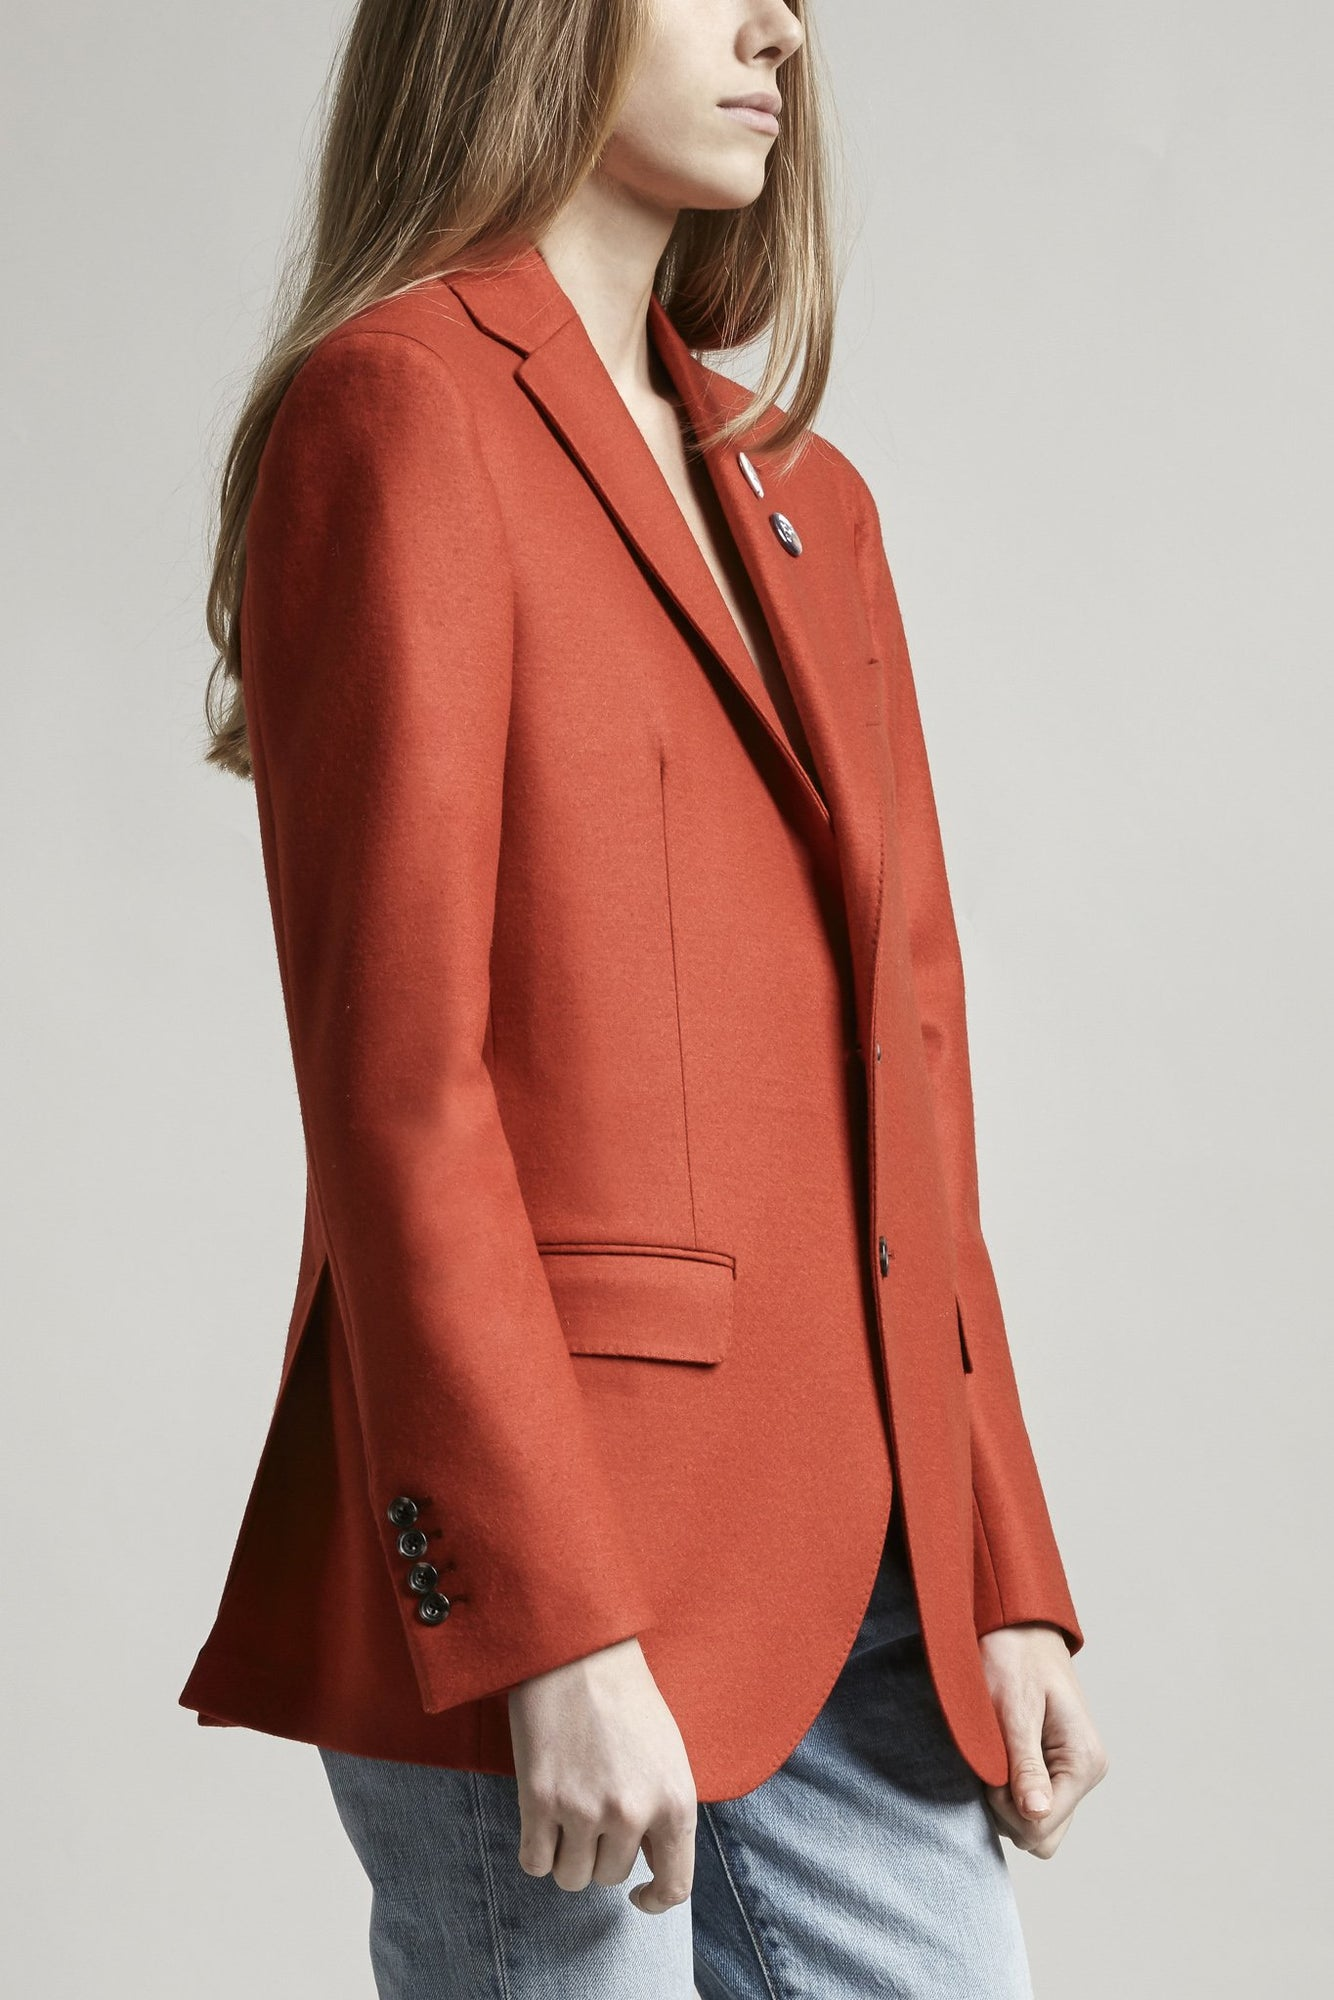 Boyfriend Blazer - Red